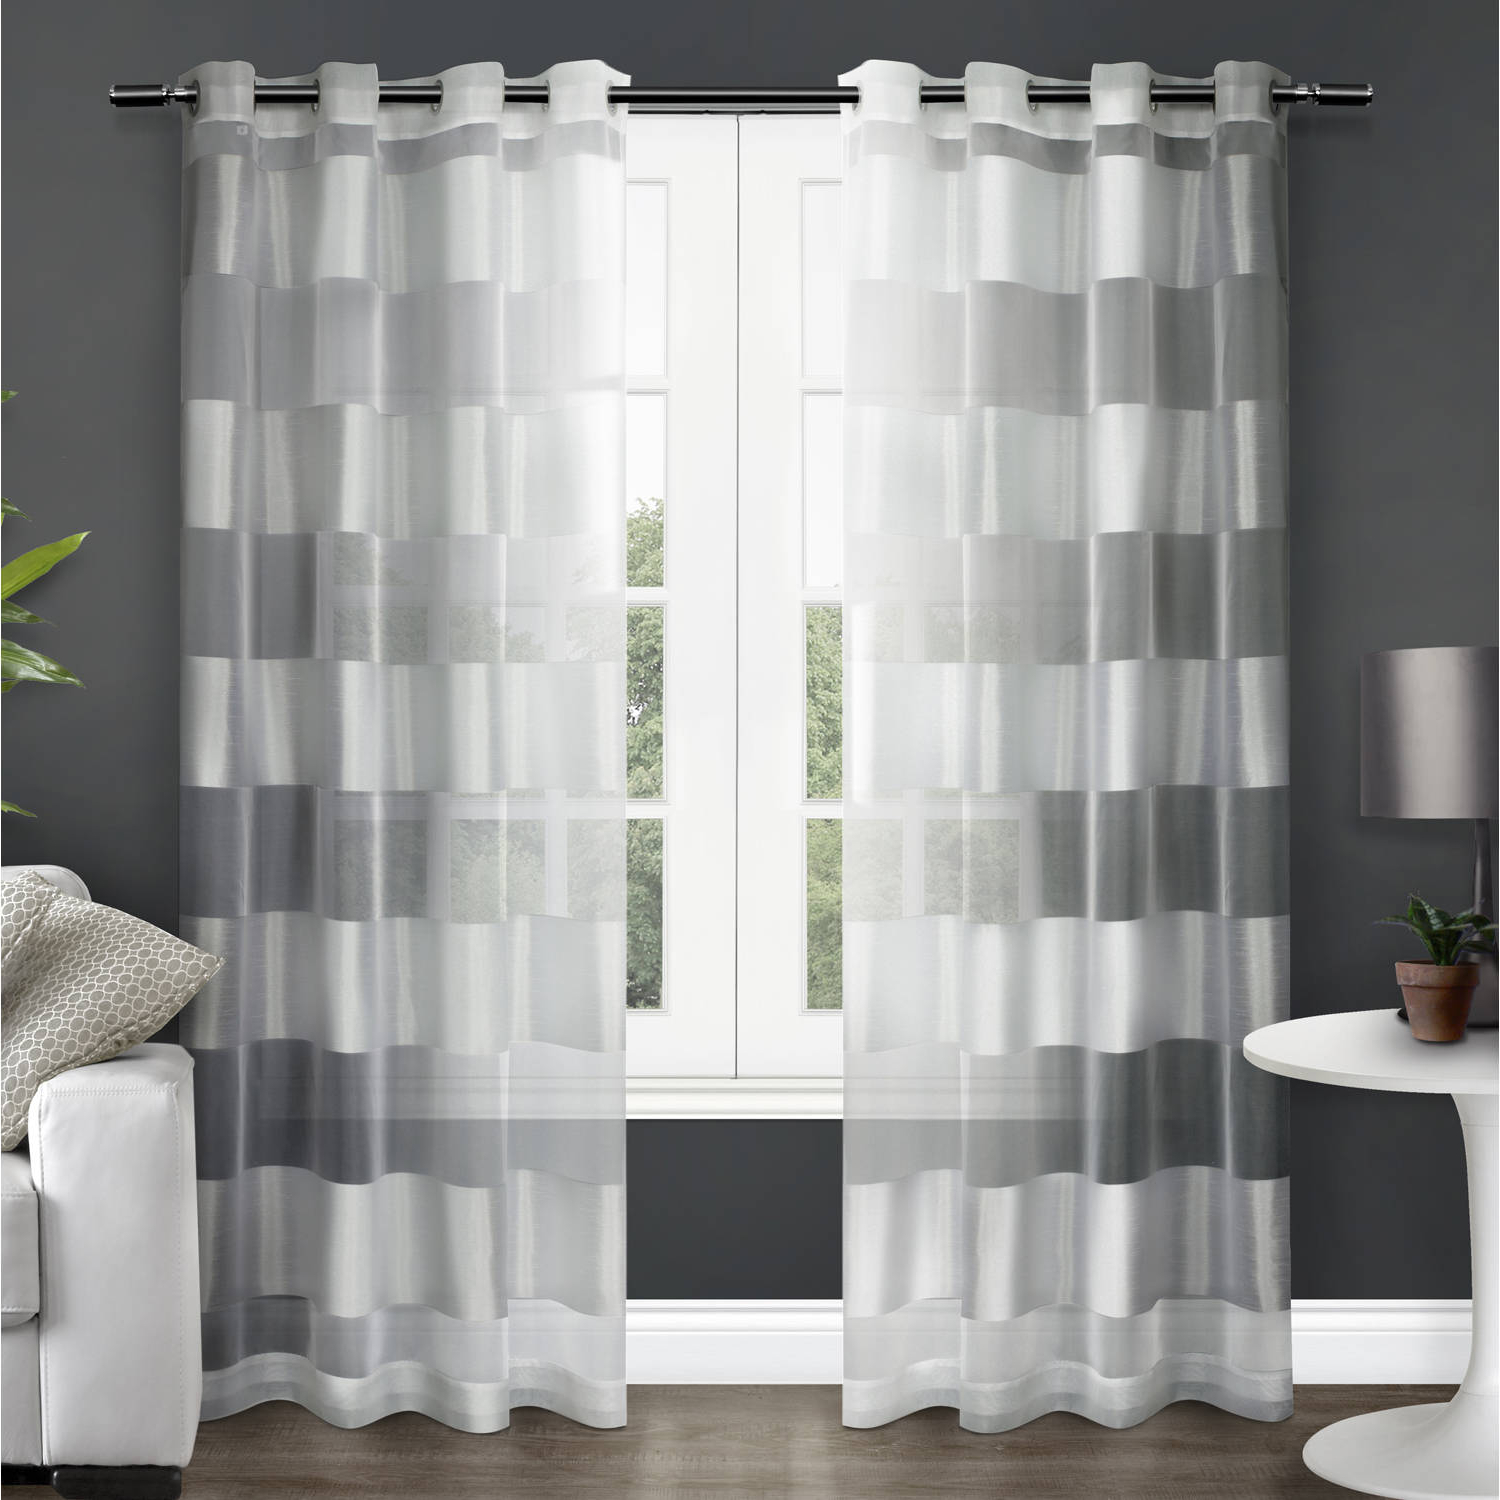 Well Known Ocean Striped Window Curtain Panel Pairs With Grommet Top With Regard To Exclusive Home Curtains 2 Pack Navaro Striped Sheer Grommet Top Curtain Panels (View 9 of 20)